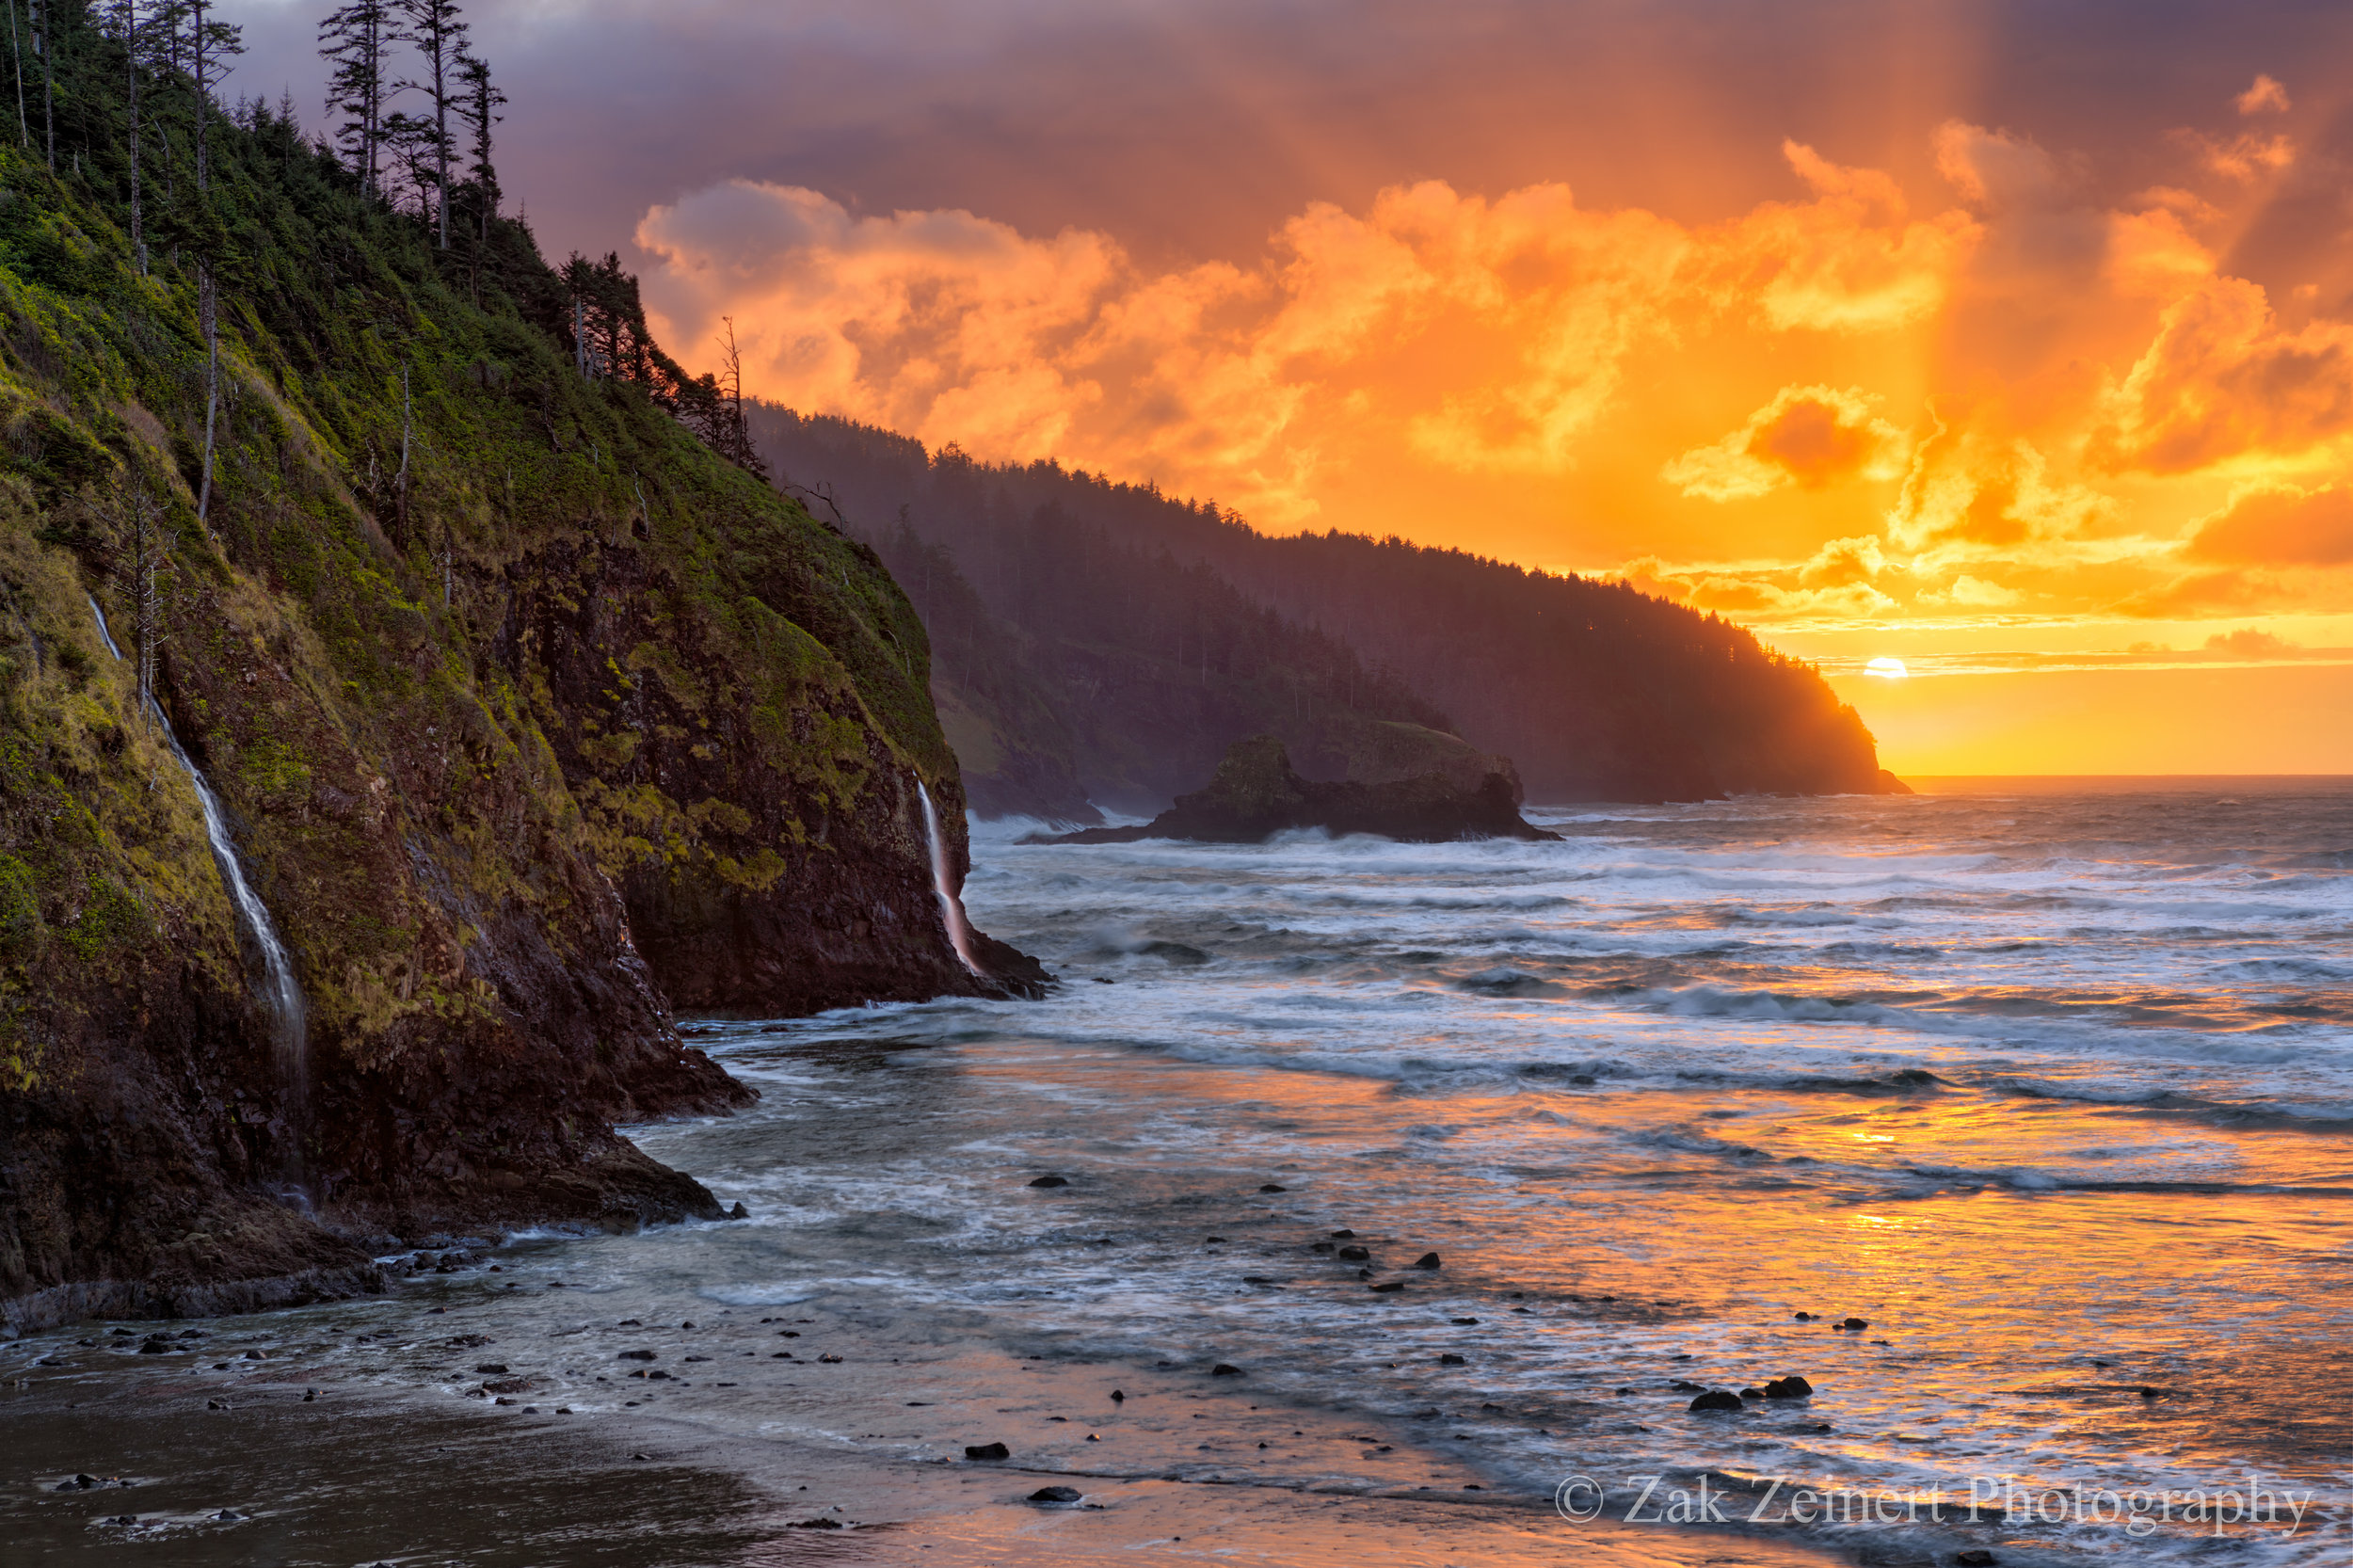 Day 2 on the Oregon Coast - Cape Lookout State Park  at Sunset